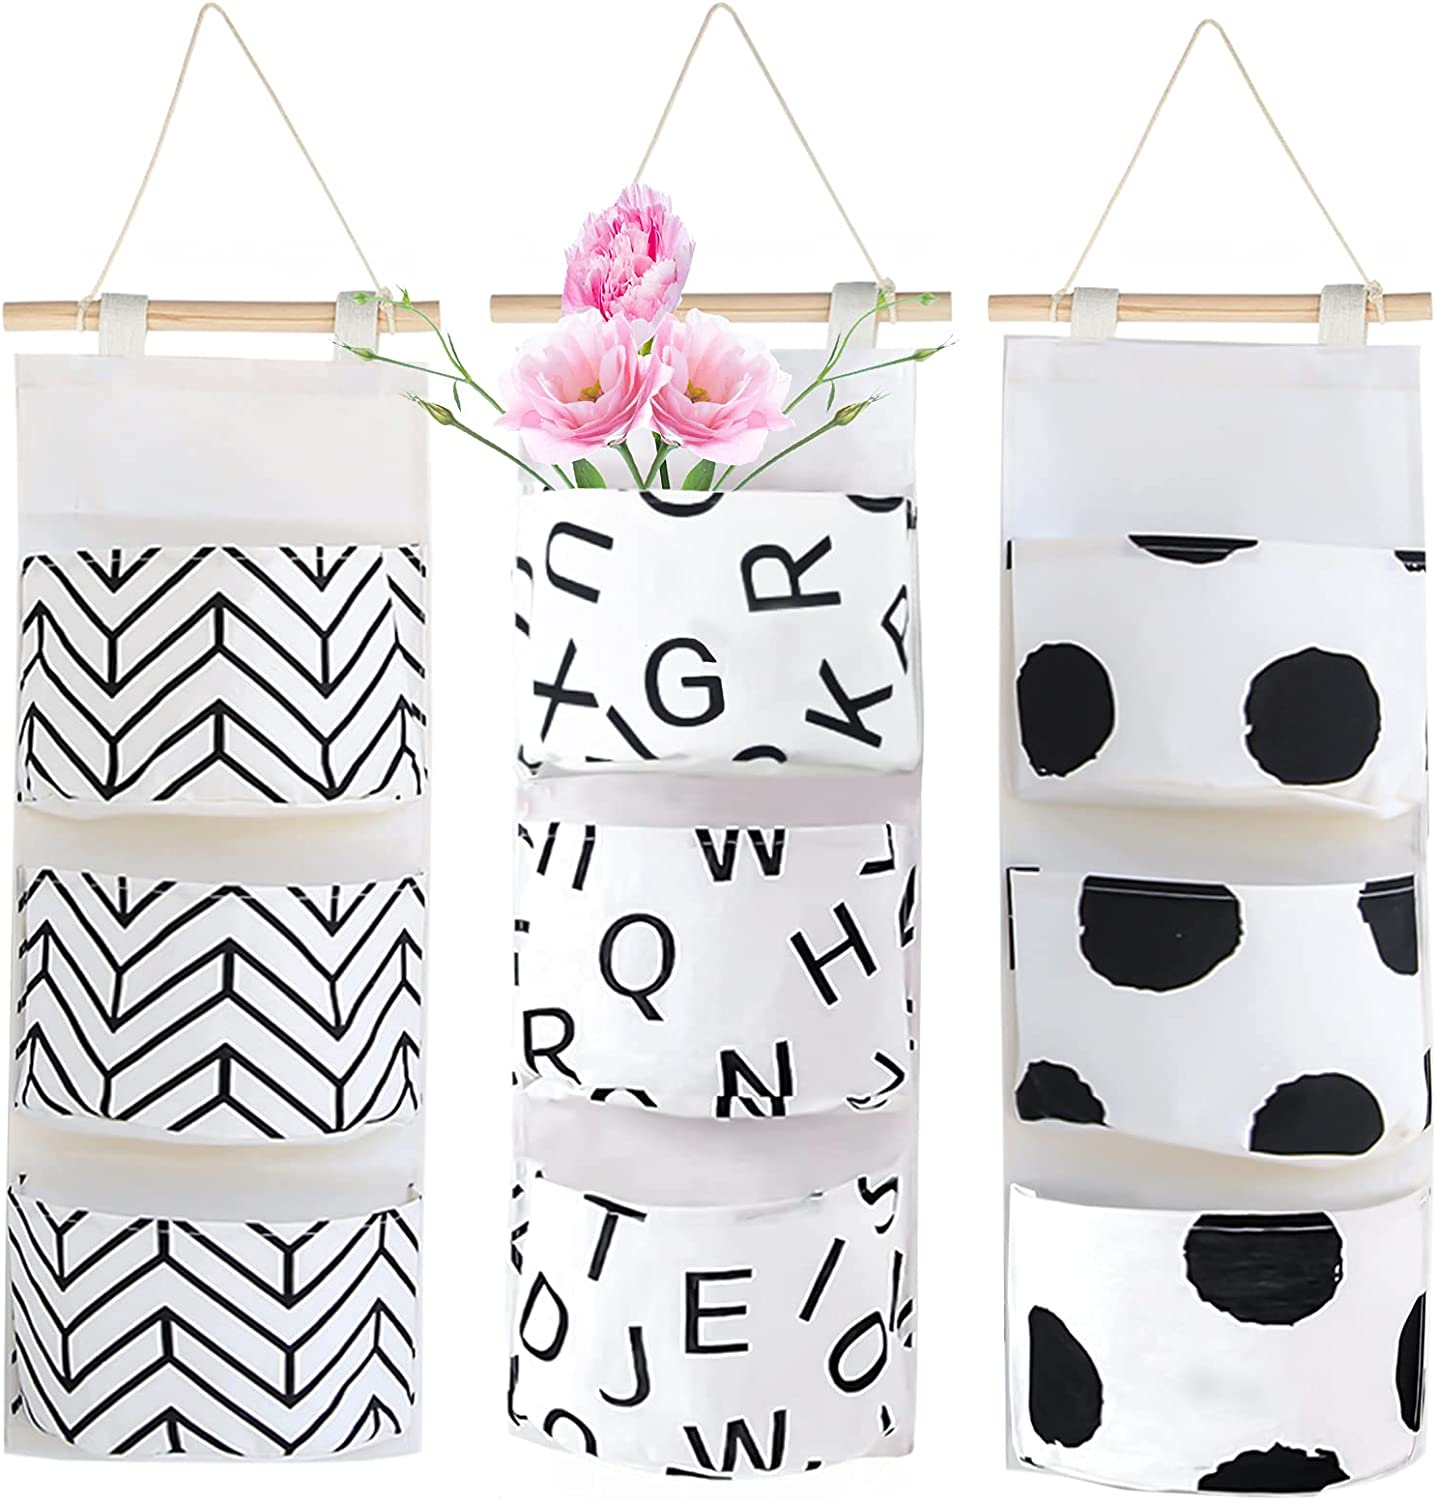 3Pcs Wall Closet Hanging Storage Bag, Waterproof Linen Over The Door Organizer with 3 Width Pockets,Fabric Wall Hanging Storage Pouches for Bedroom Bathroom(Arrow/ Letter/Dot)